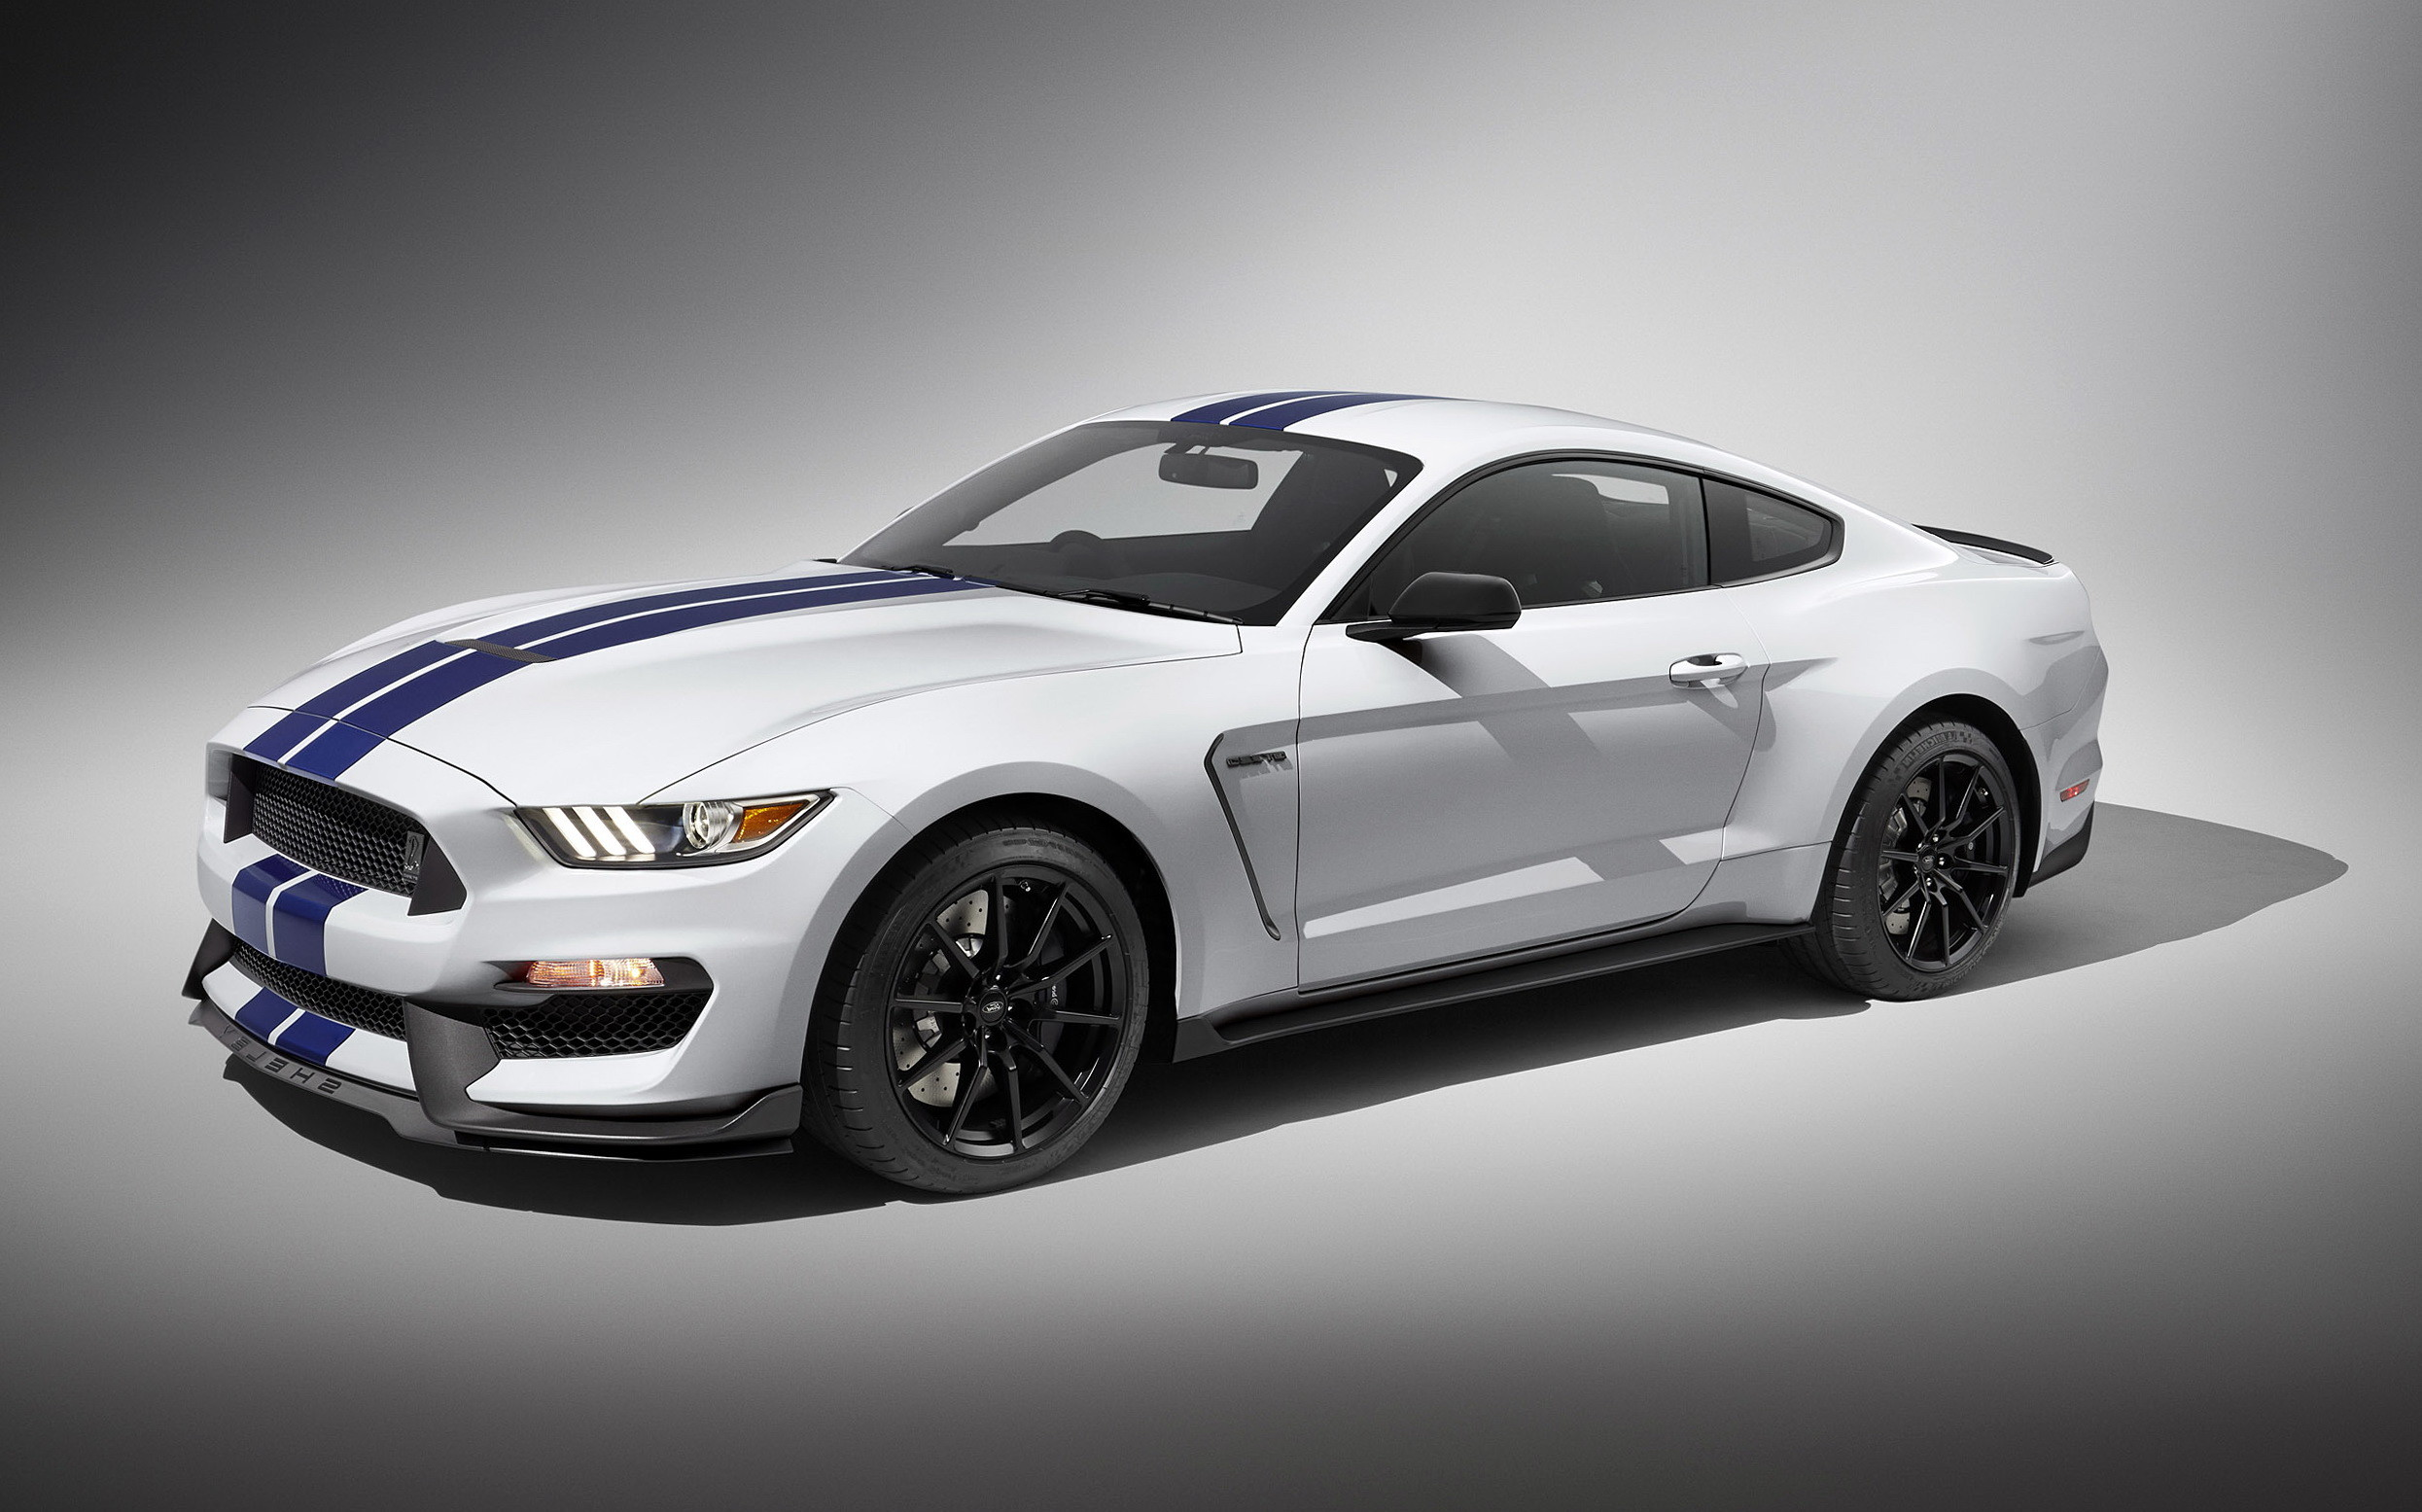 2016 Ford Mustang Shelby Gt350 Wallpaper | Automotive Designs